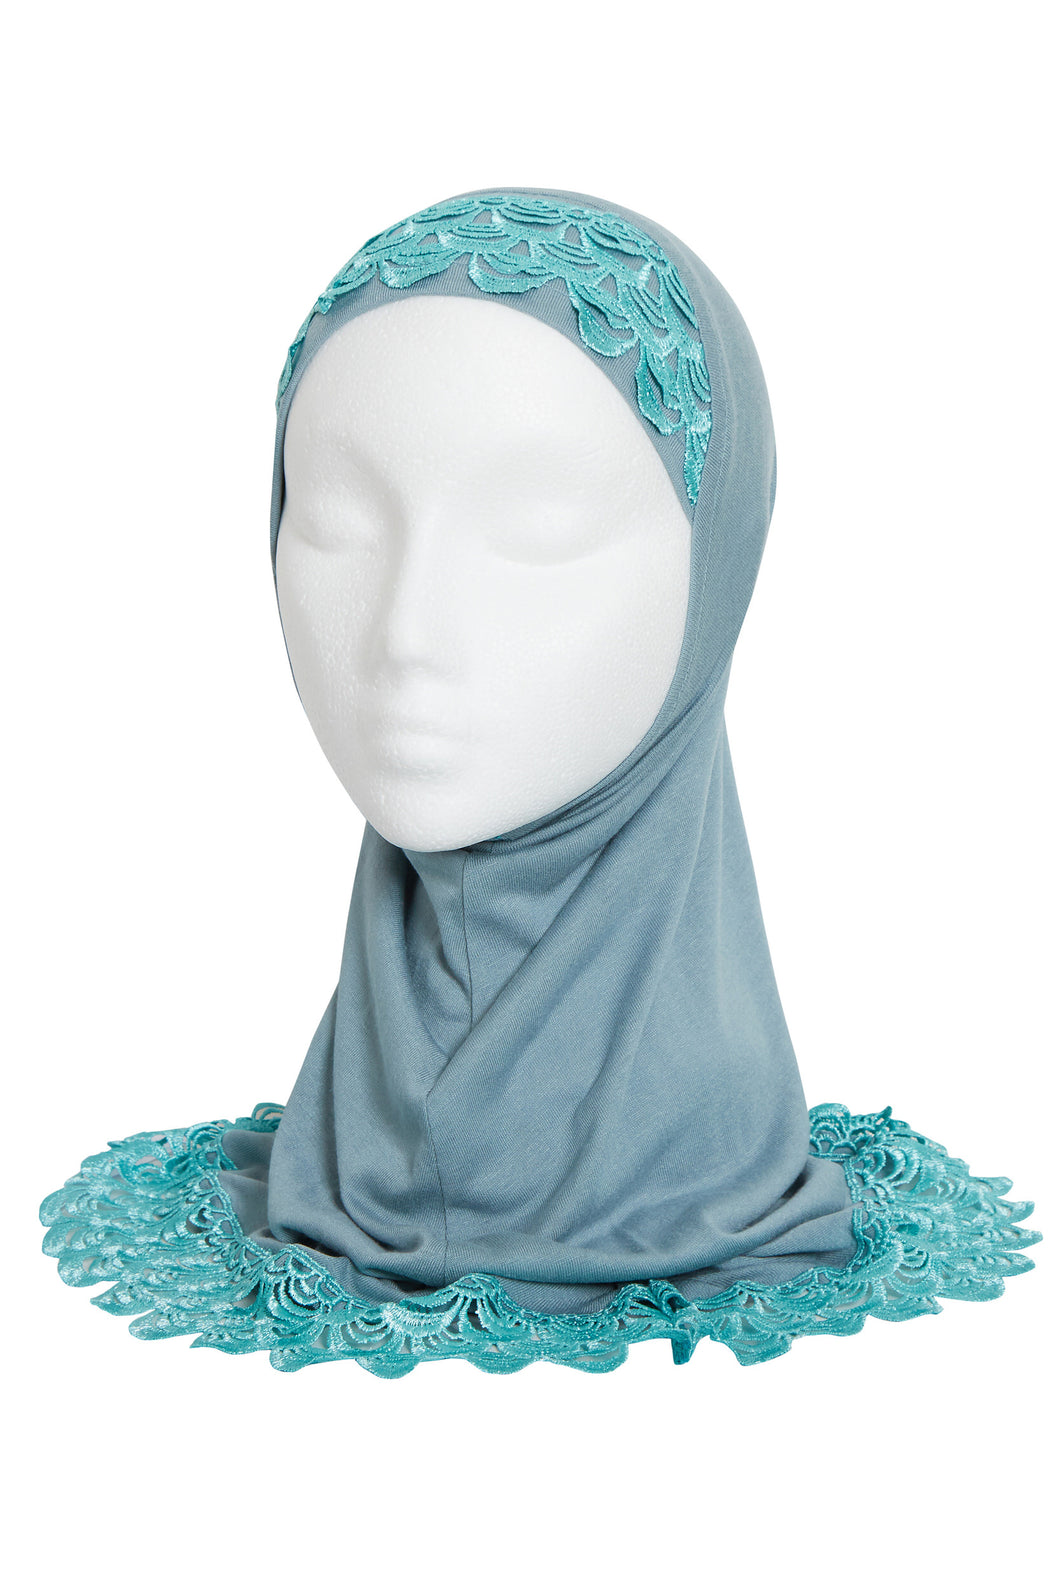 GIRLS DUCK EGG BLUE LACE HIJAB